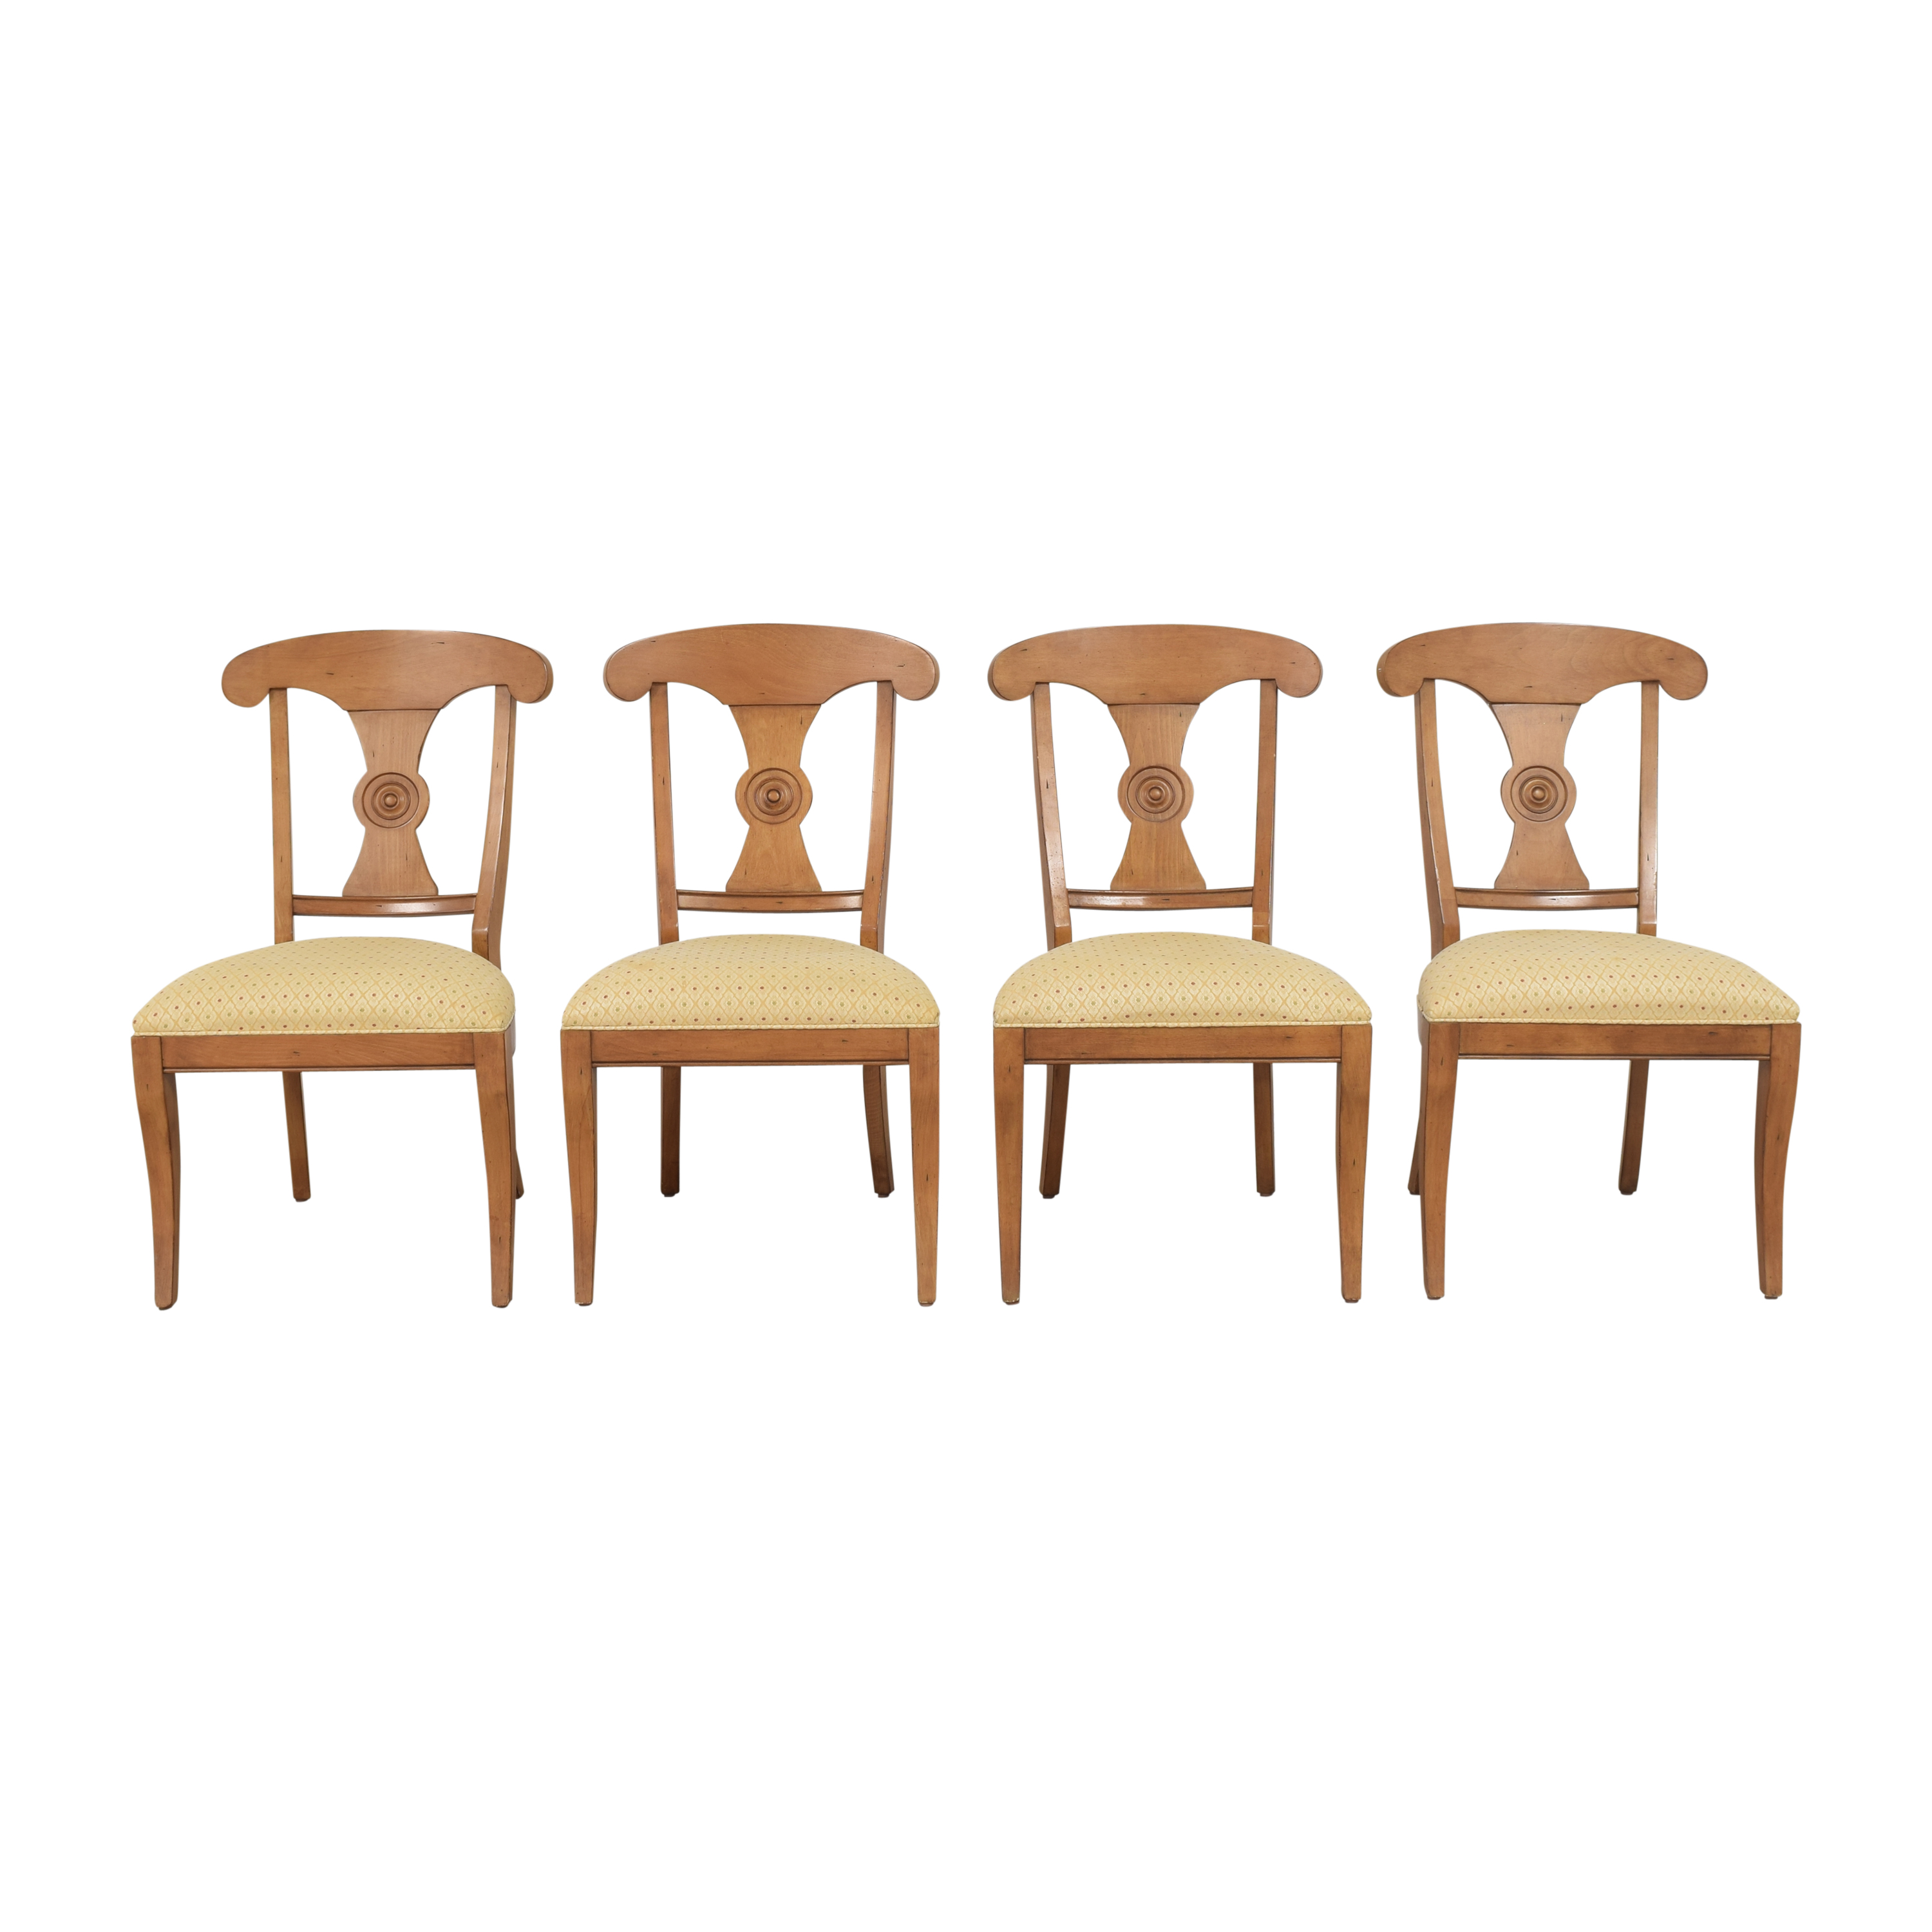 Ethan Allen Ethan Allen New Country Dining Chairs on sale